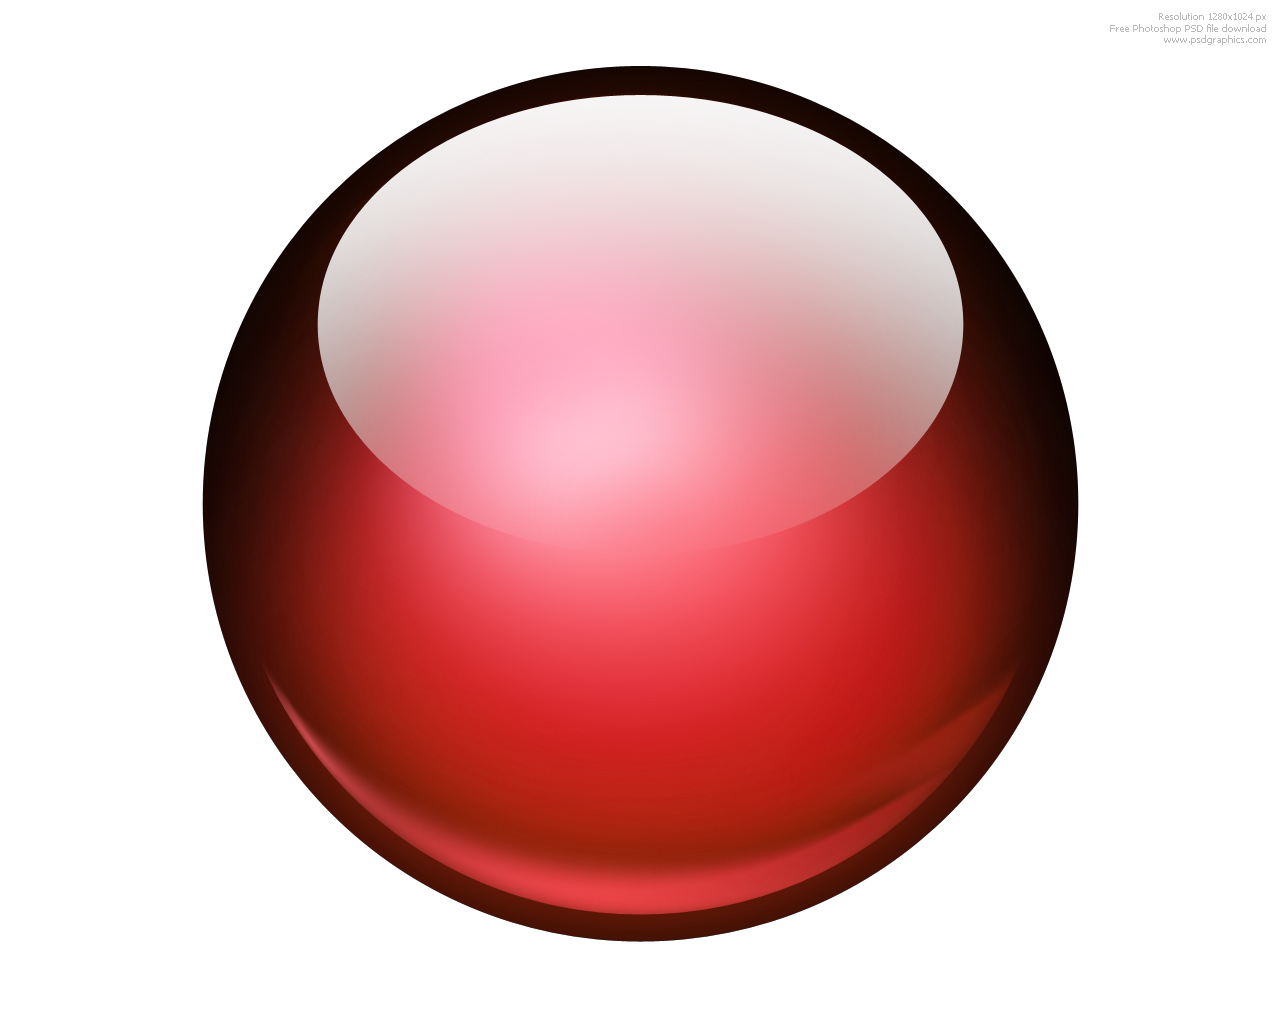 8 Red Ball Icon Images